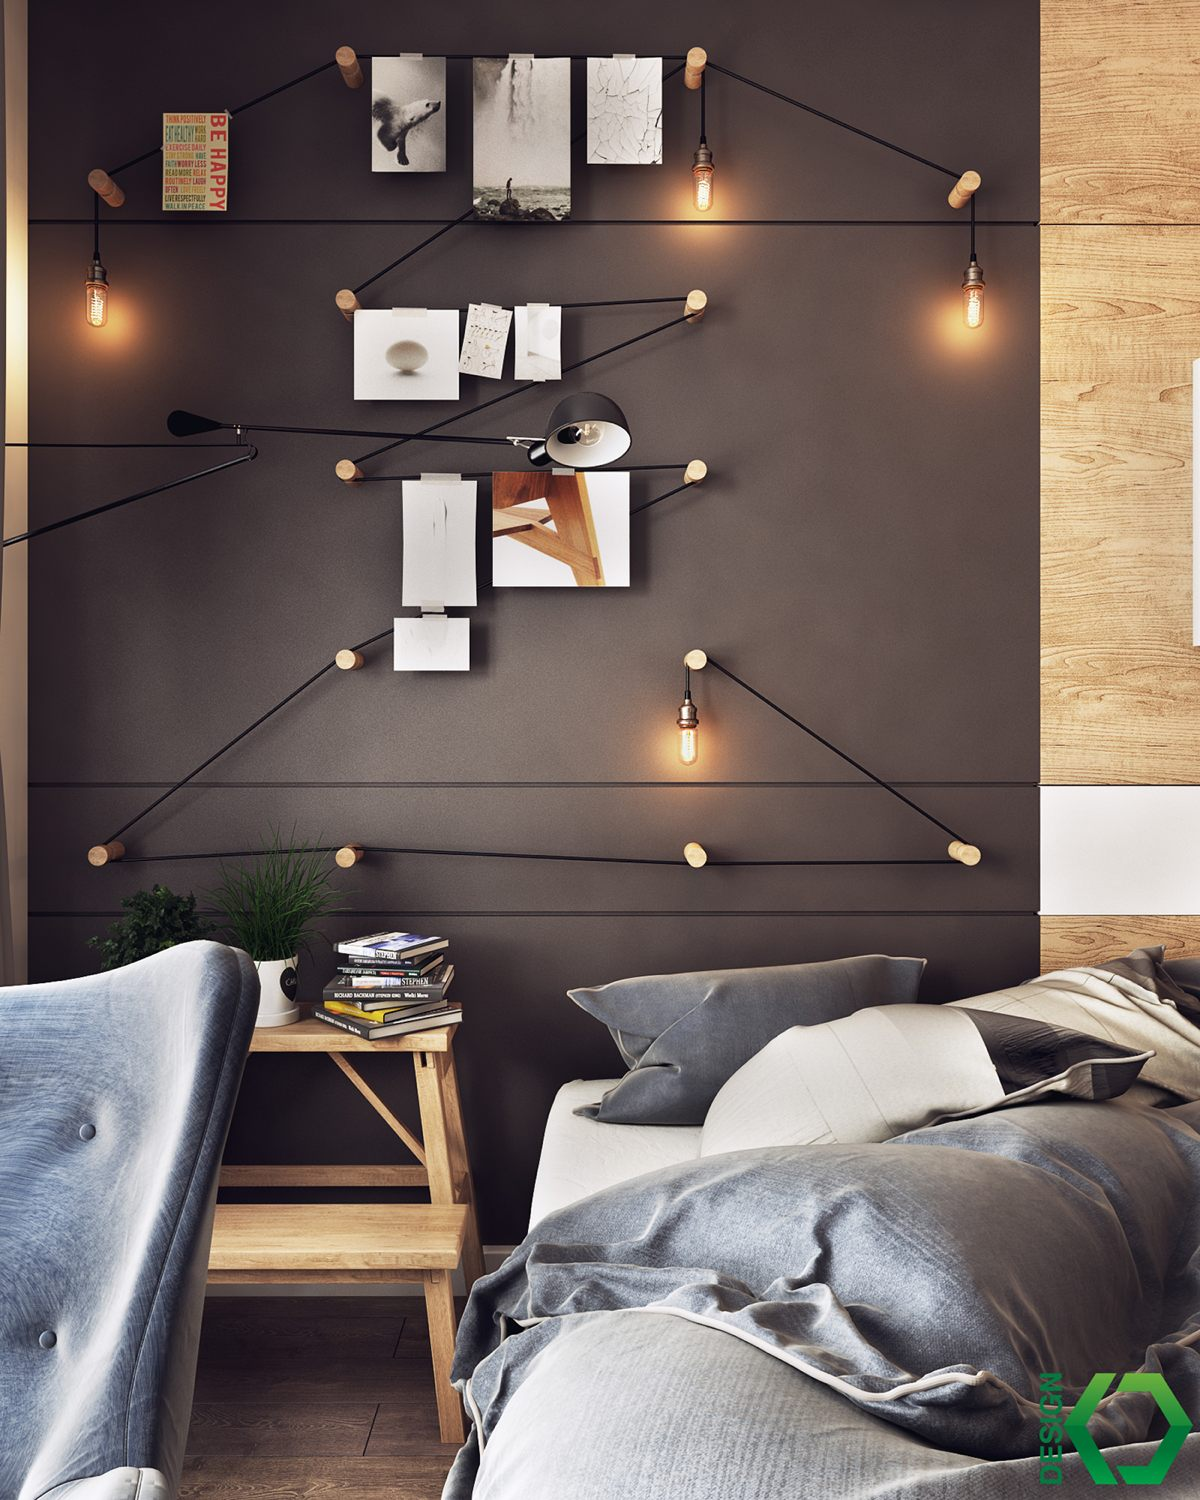 Creative Bedroom Lighting Idea - A charming eclectic home inspired by nordic design